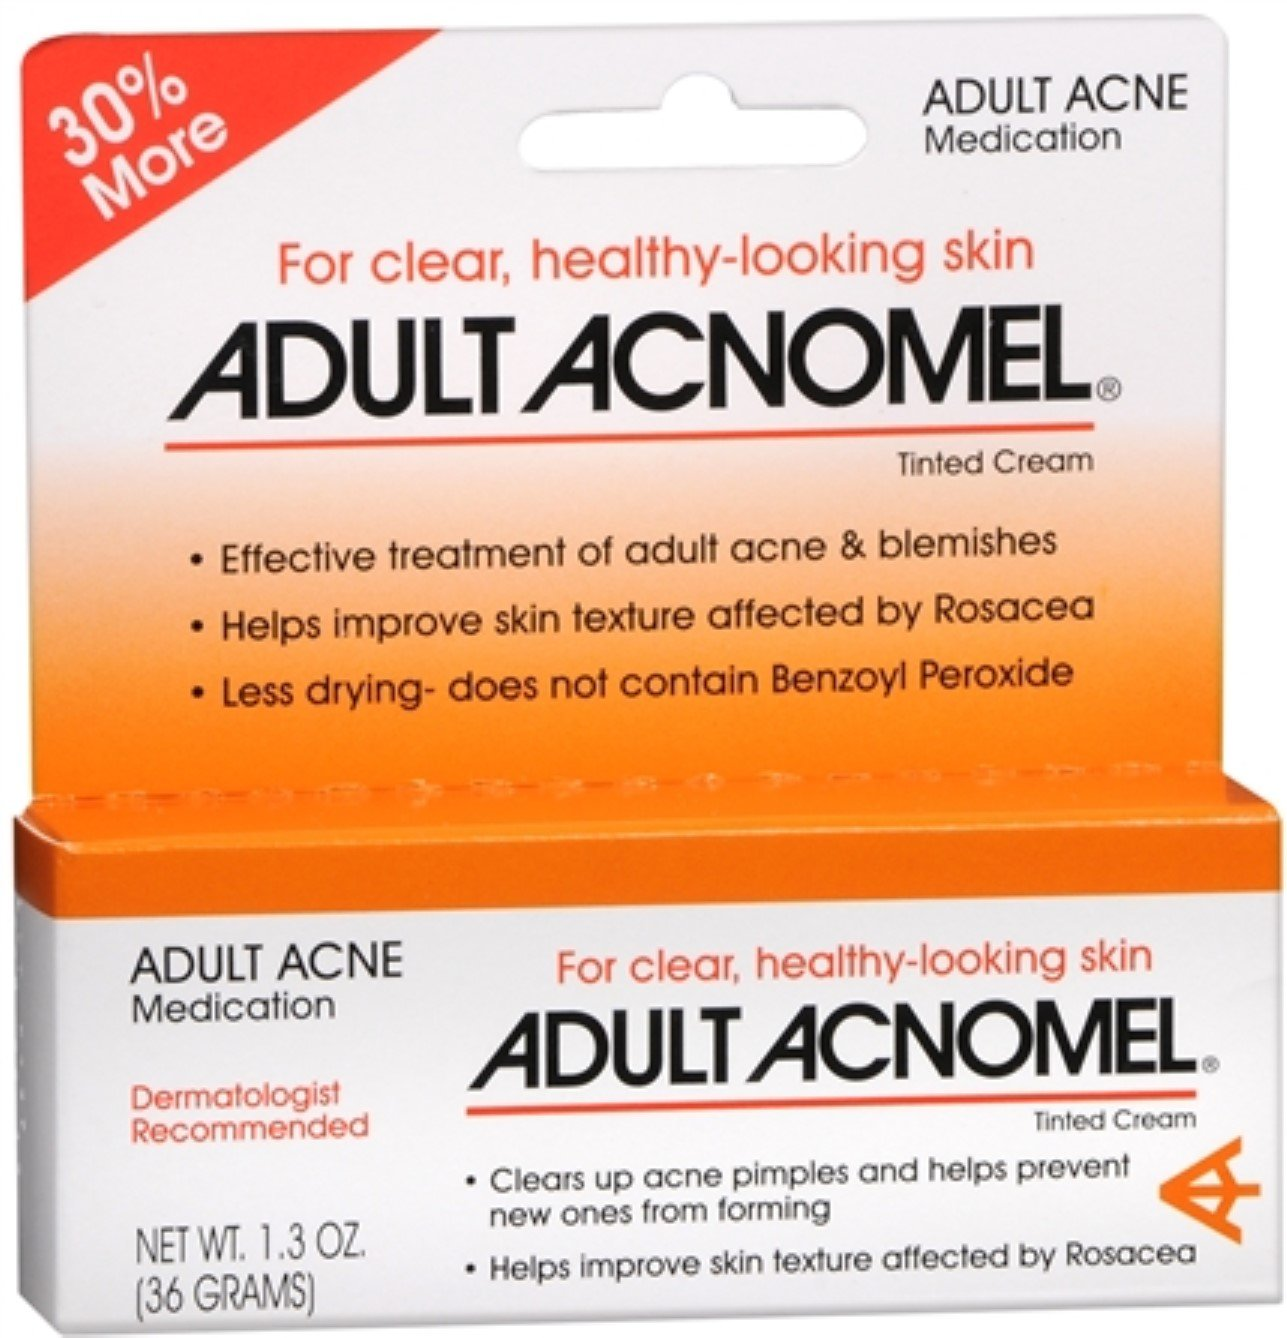 Adult Acnomel Tinted Cream 1.30 of 7 oz Popular products Max 90% OFF Pack